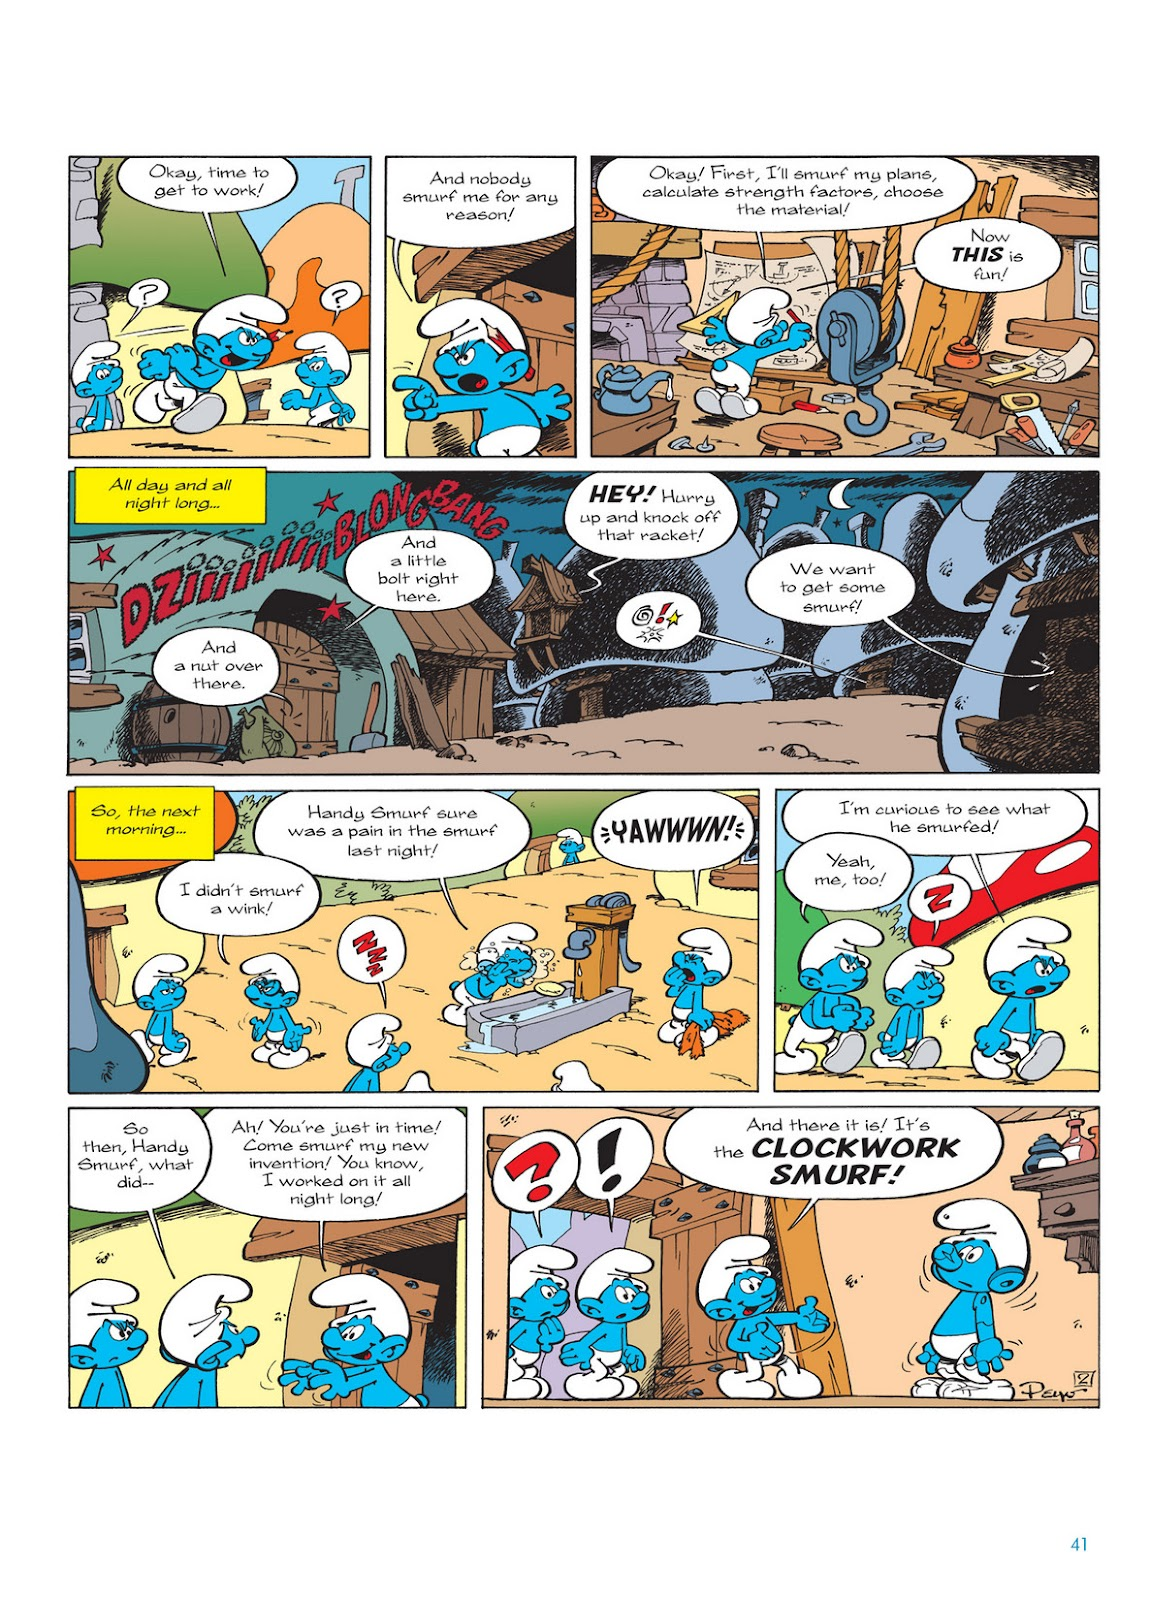 Read online The Smurfs comic -  Issue #13 - 41